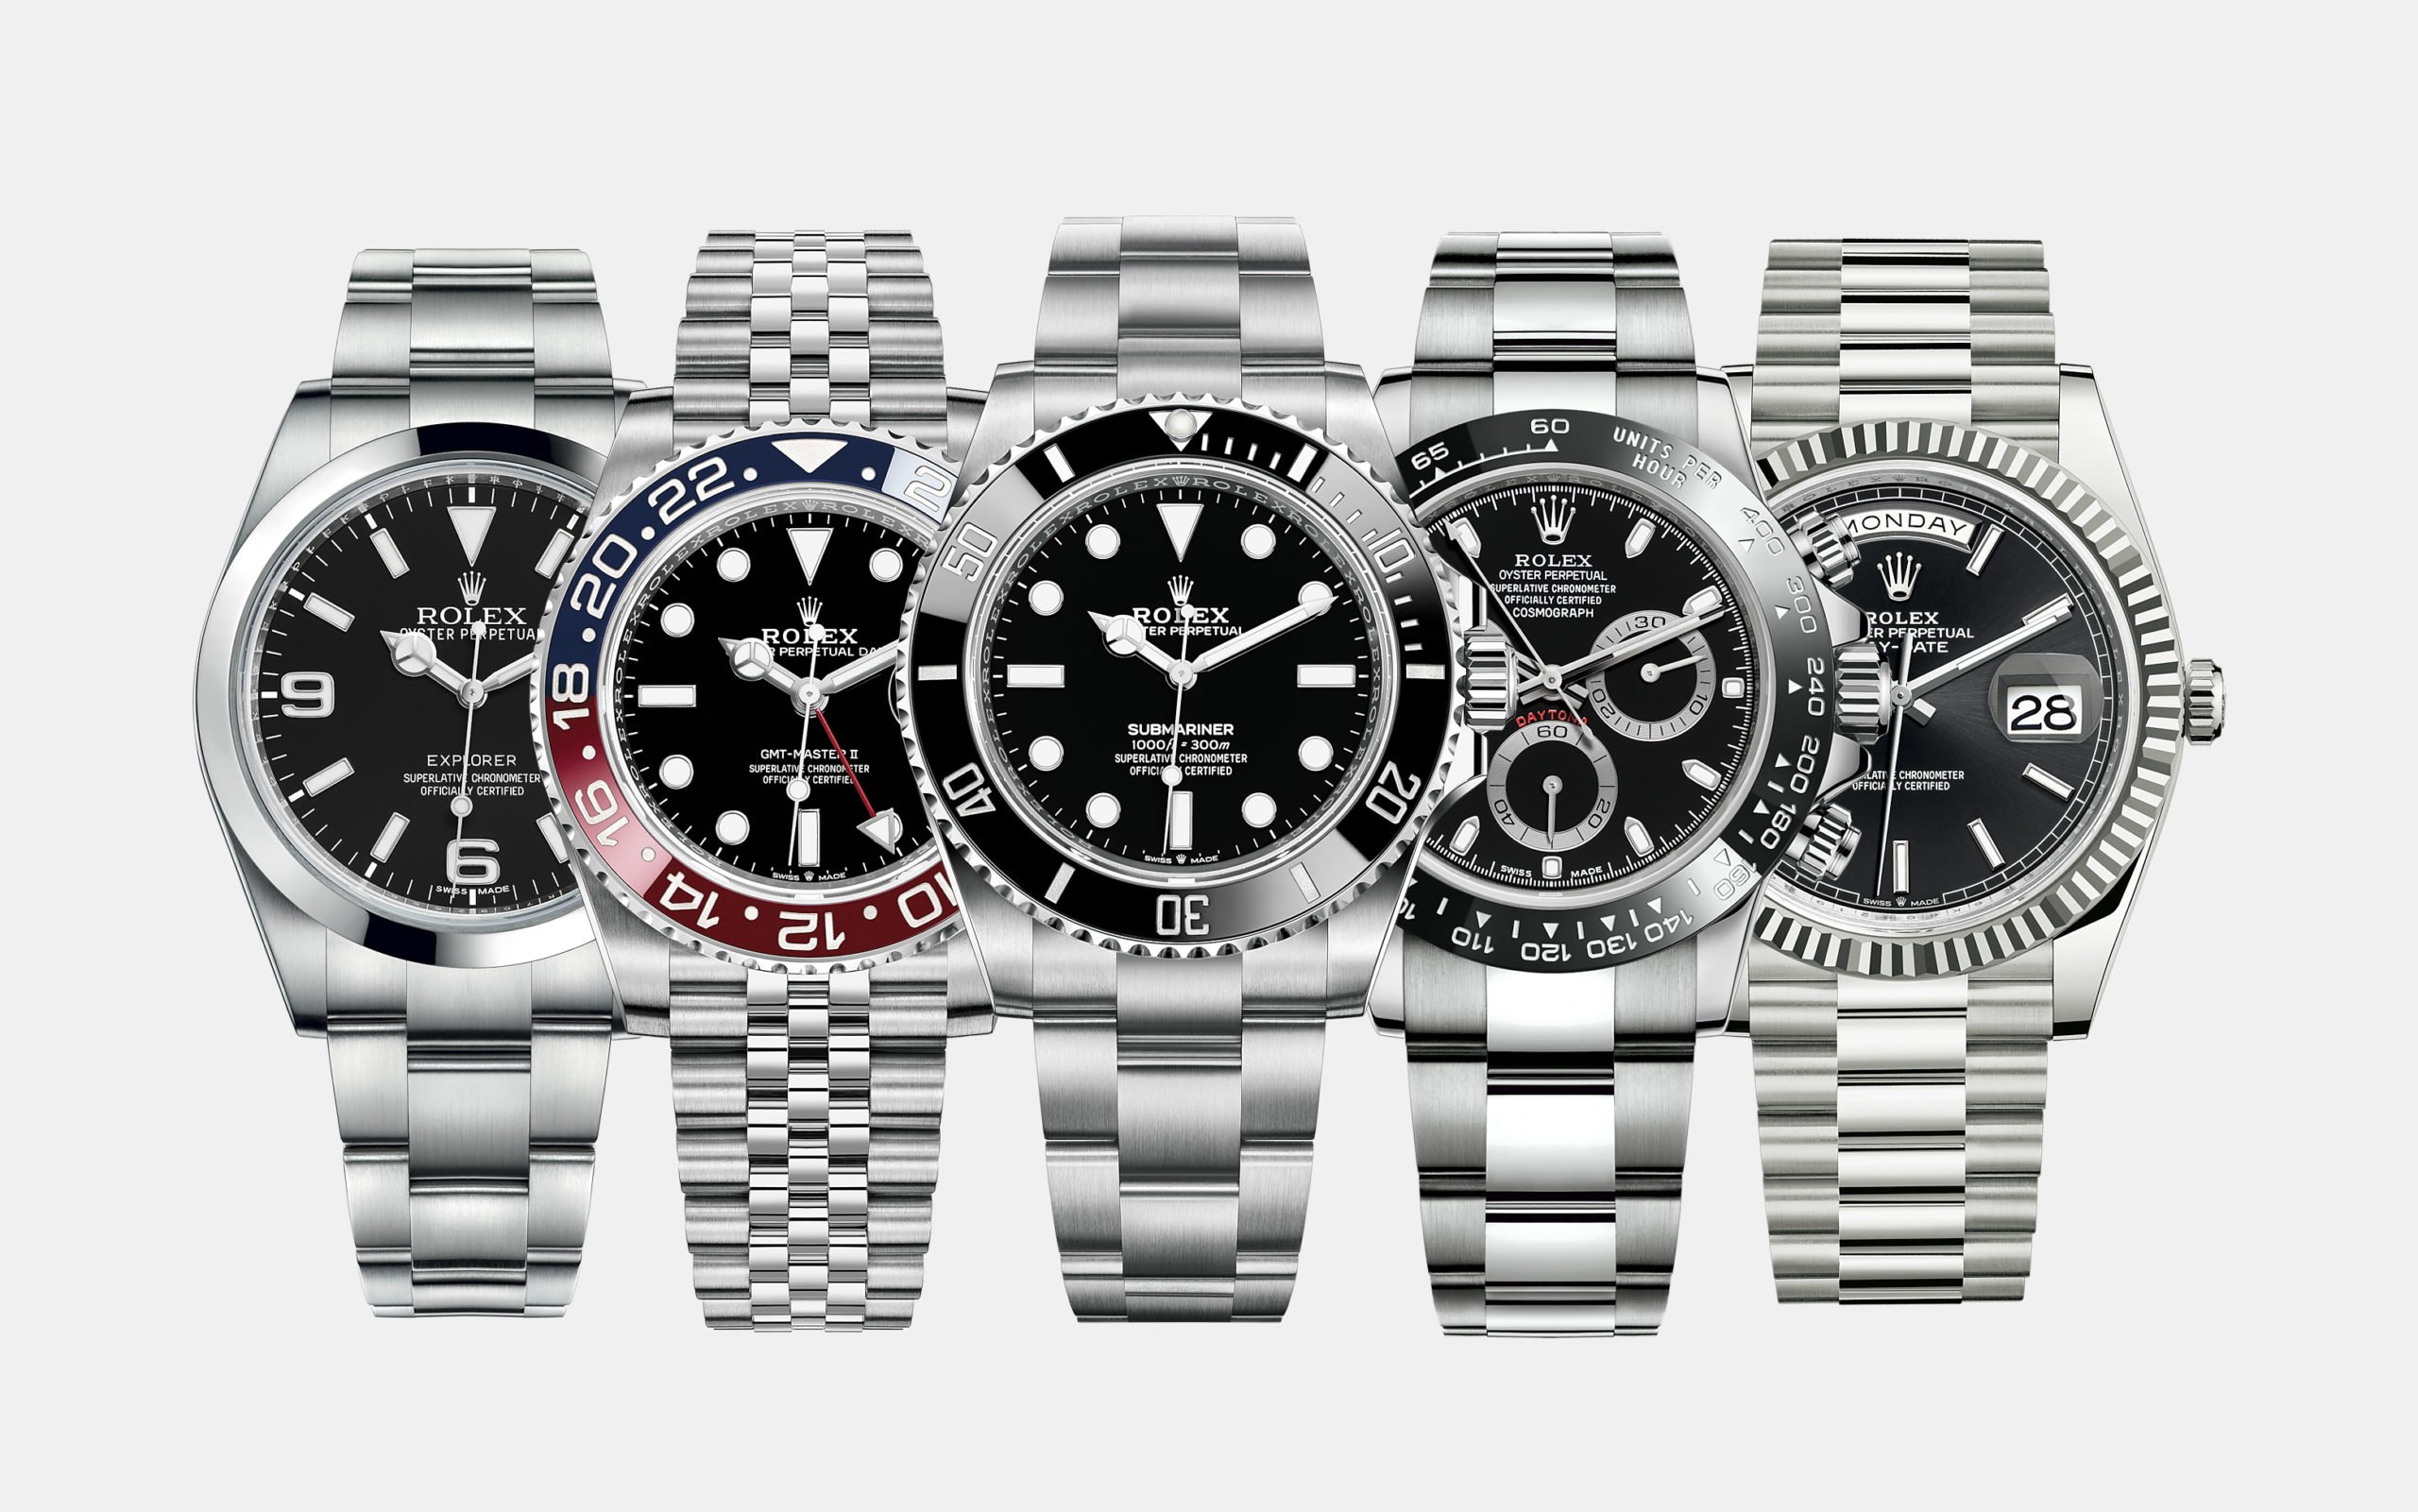 Most Iconic Rolex Watch Models